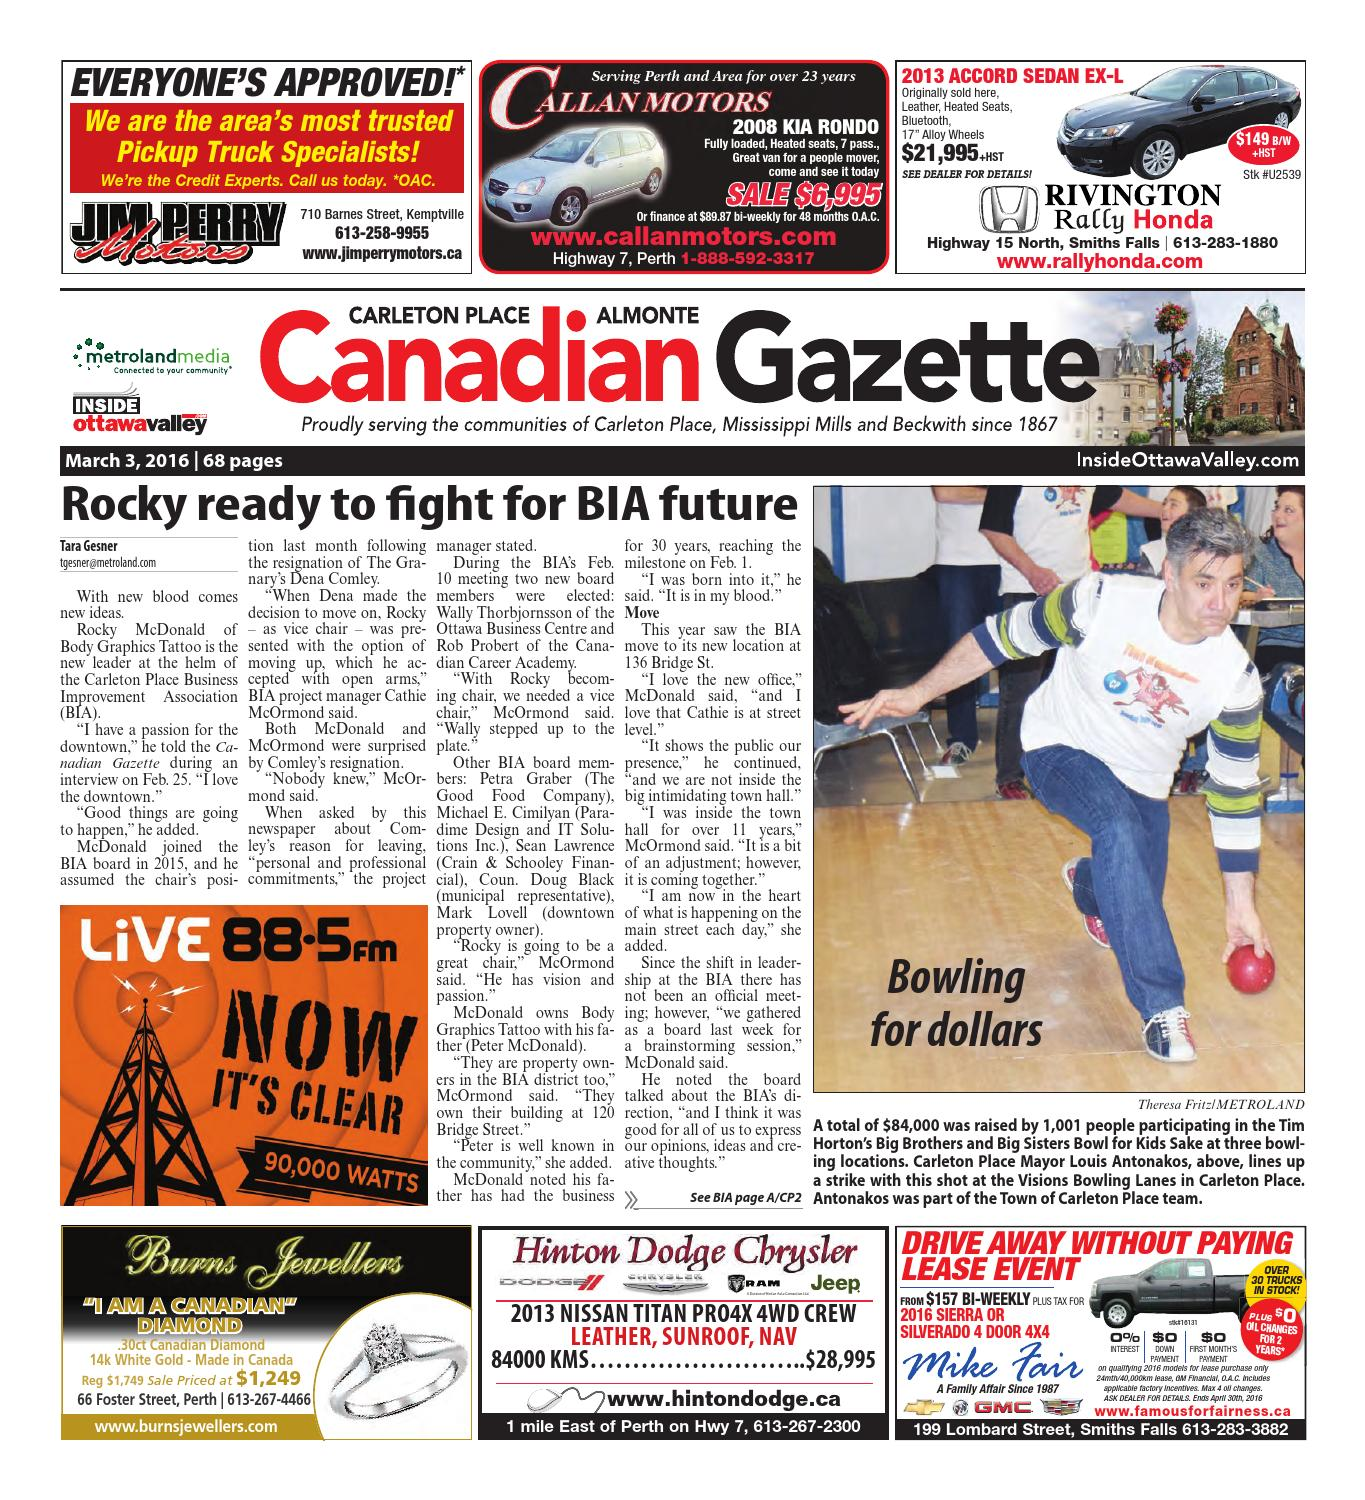 e5312c38a25 Almontecatletonplace030316 by Metroland East - Almonte Carleton Place  Canadian Gazette - issuu